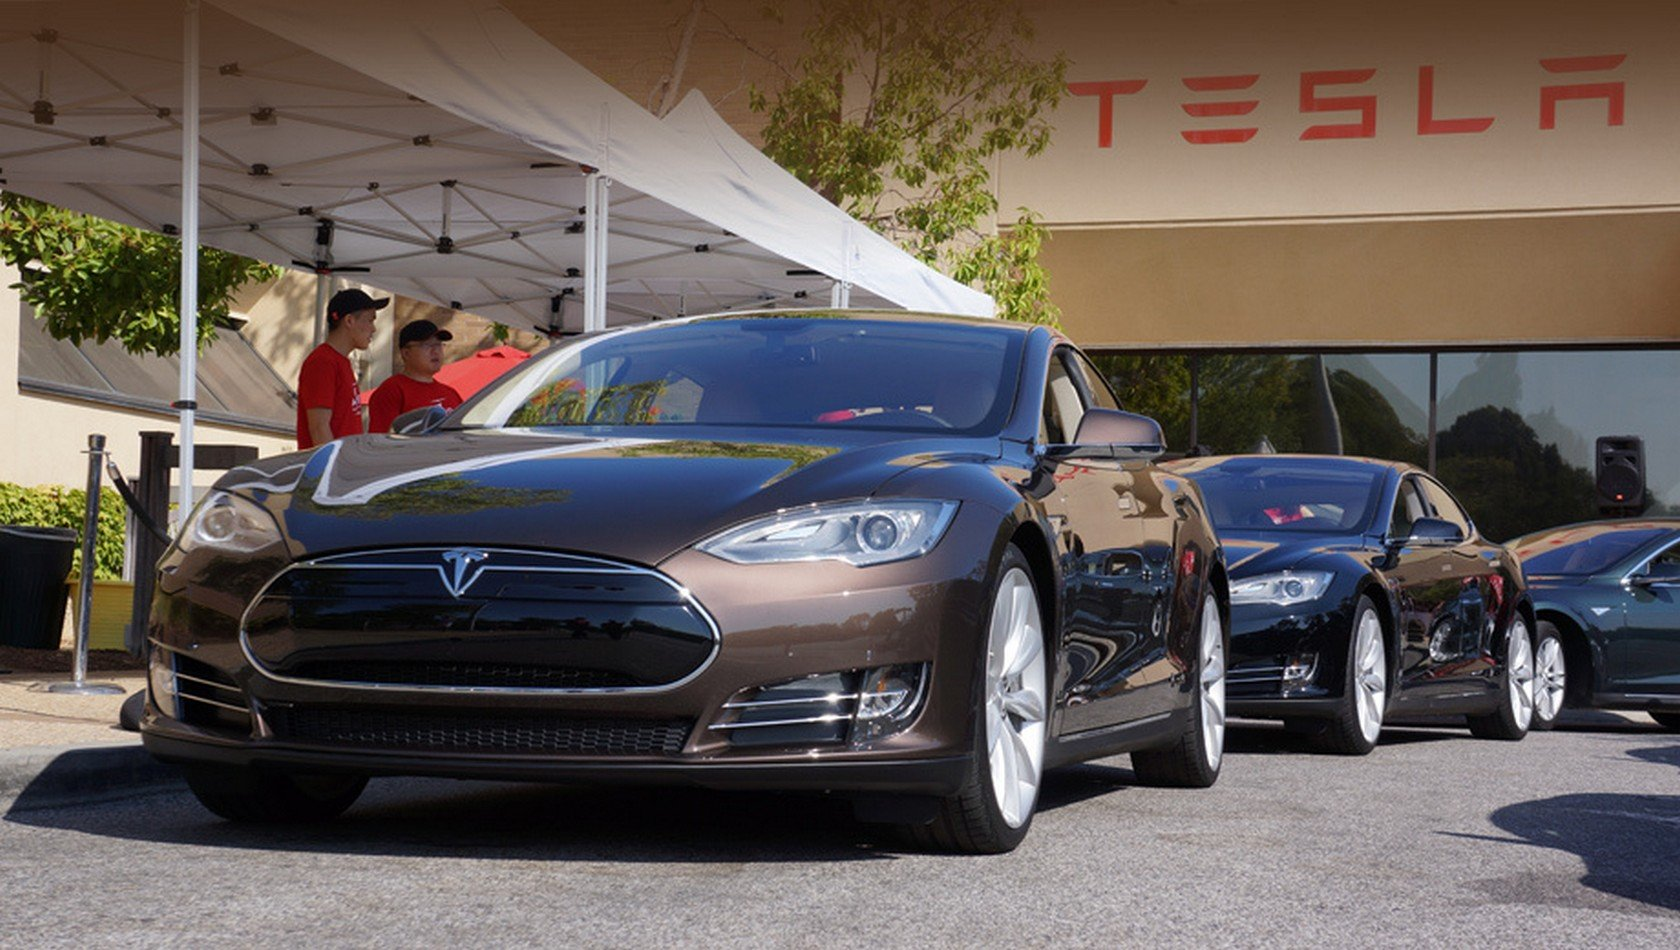 electric car and tesla motors essay introduction tesla motors is a global enterprise specializing in the design, production, and marketing of electric powered vehicles founded in 2003 by the young businessman, elon musk.